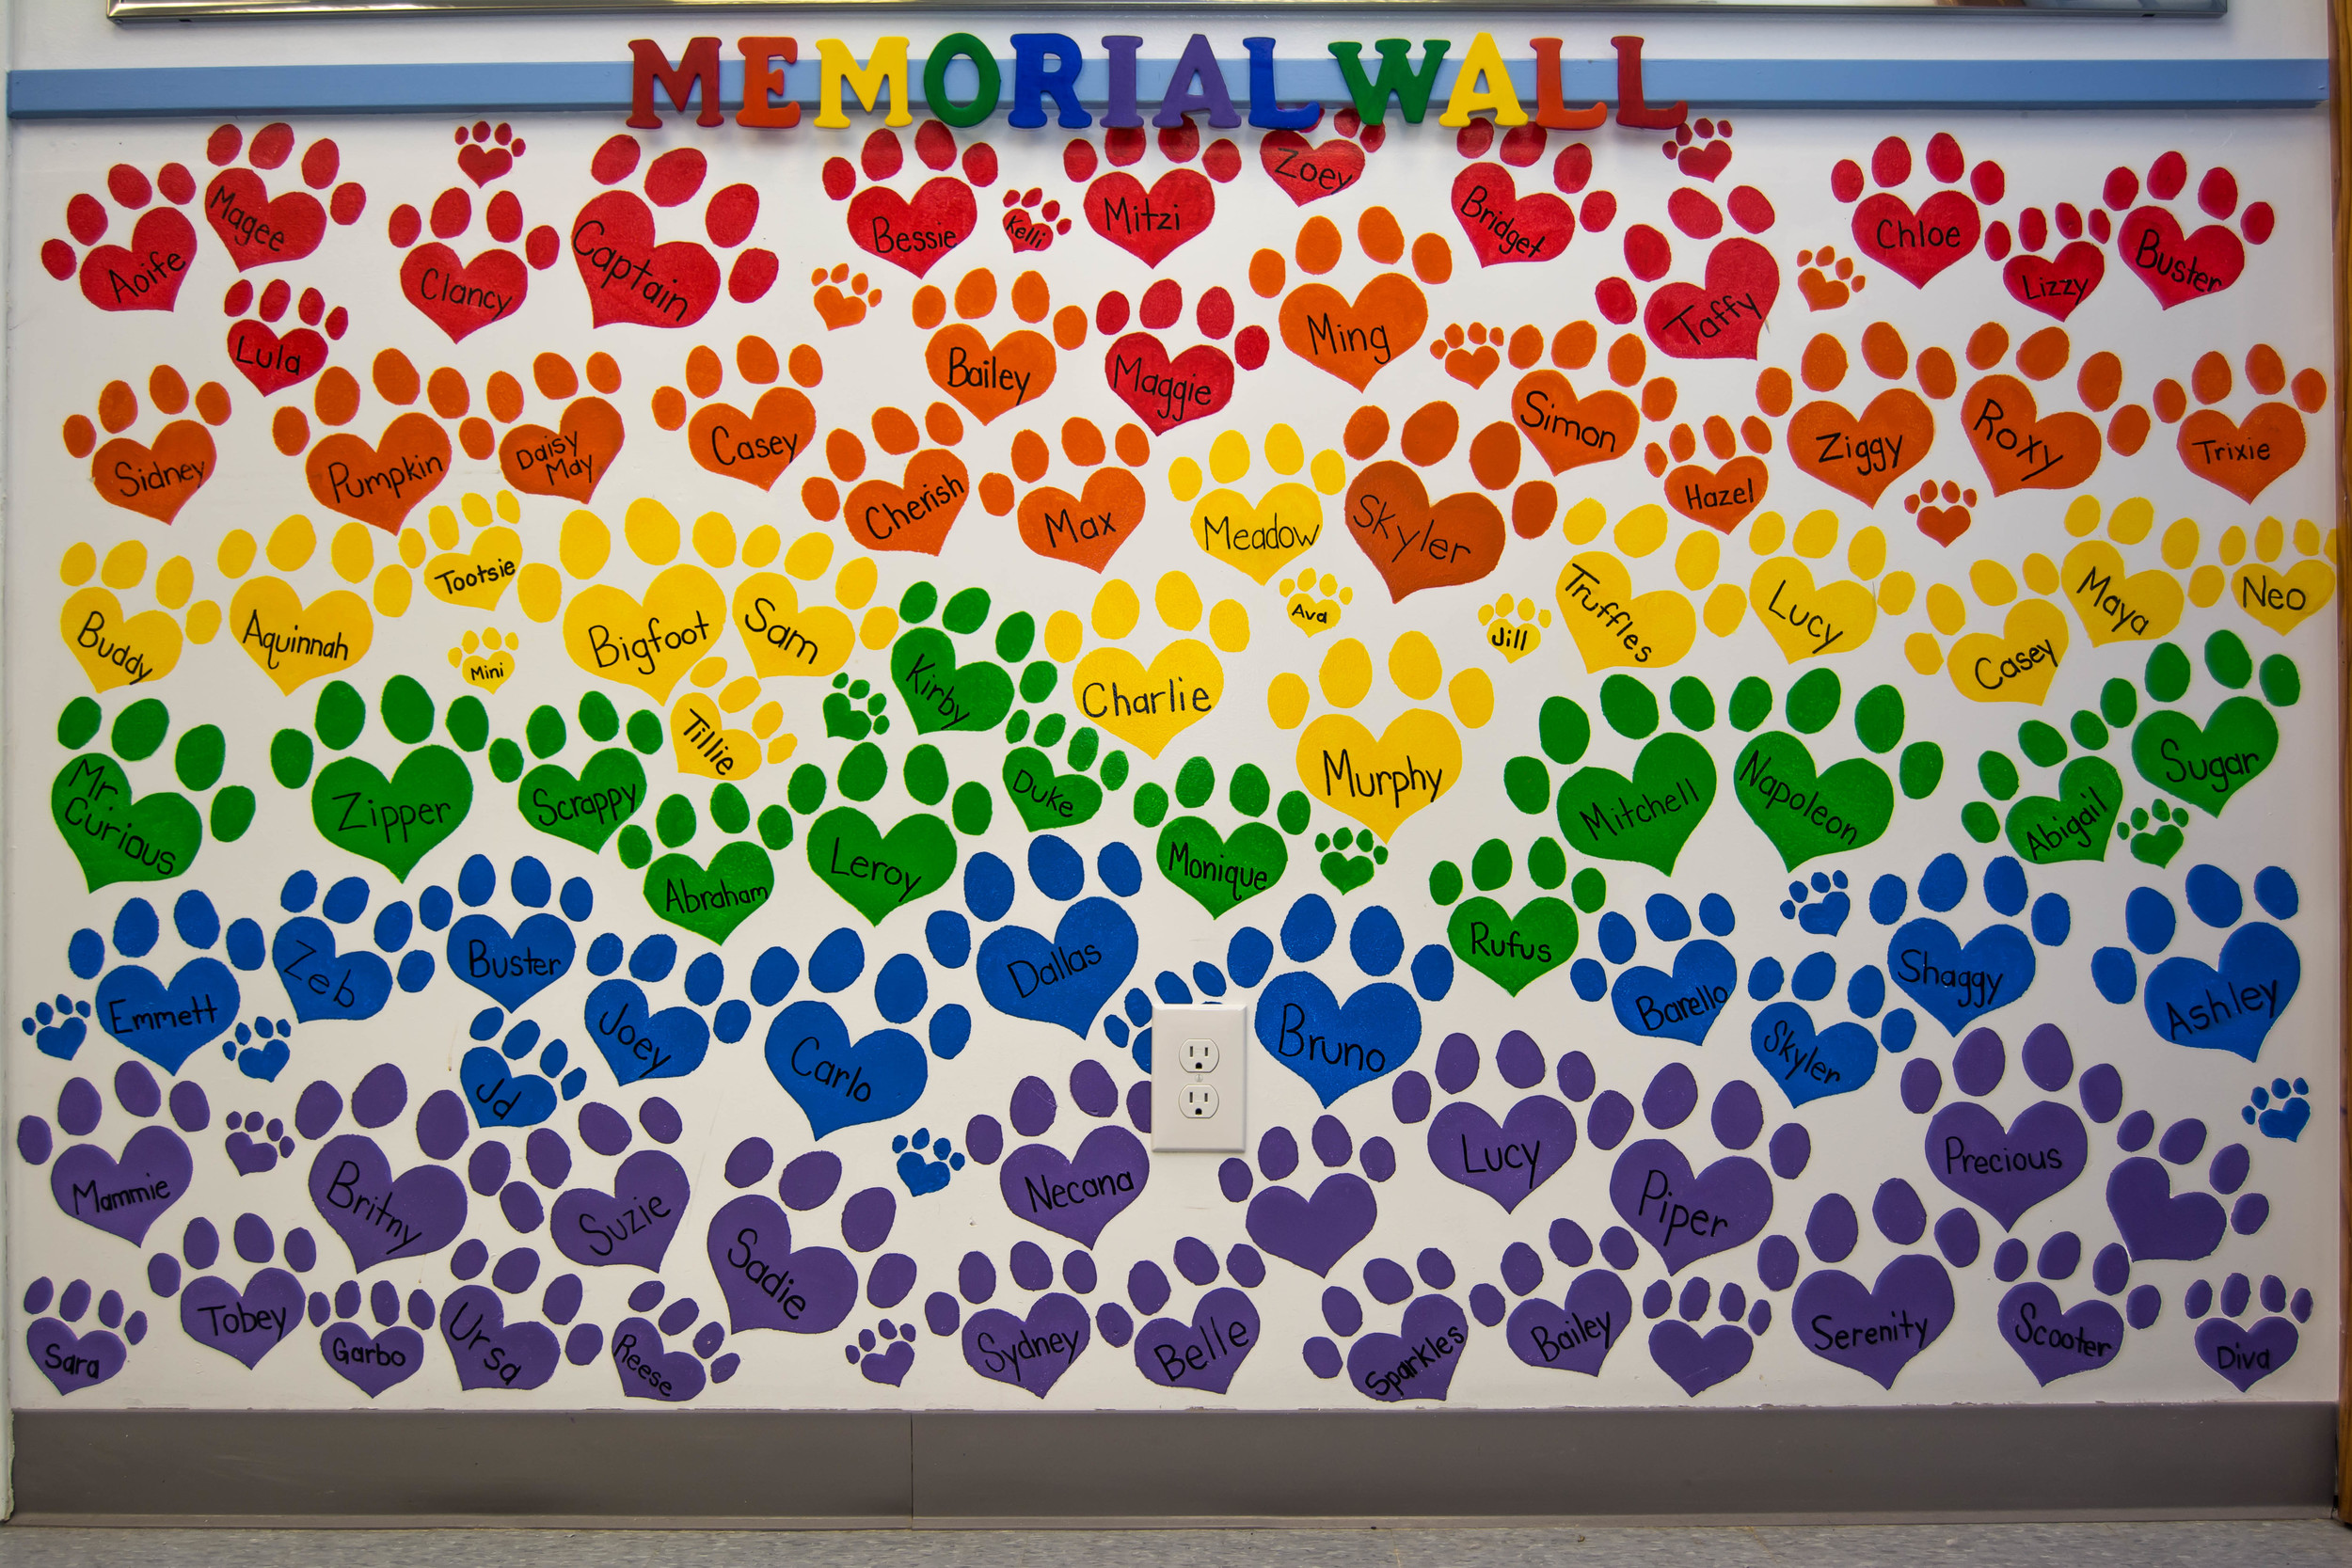 Memorial Wall of all the dogs that have crossed over to the Rainbow Bridge